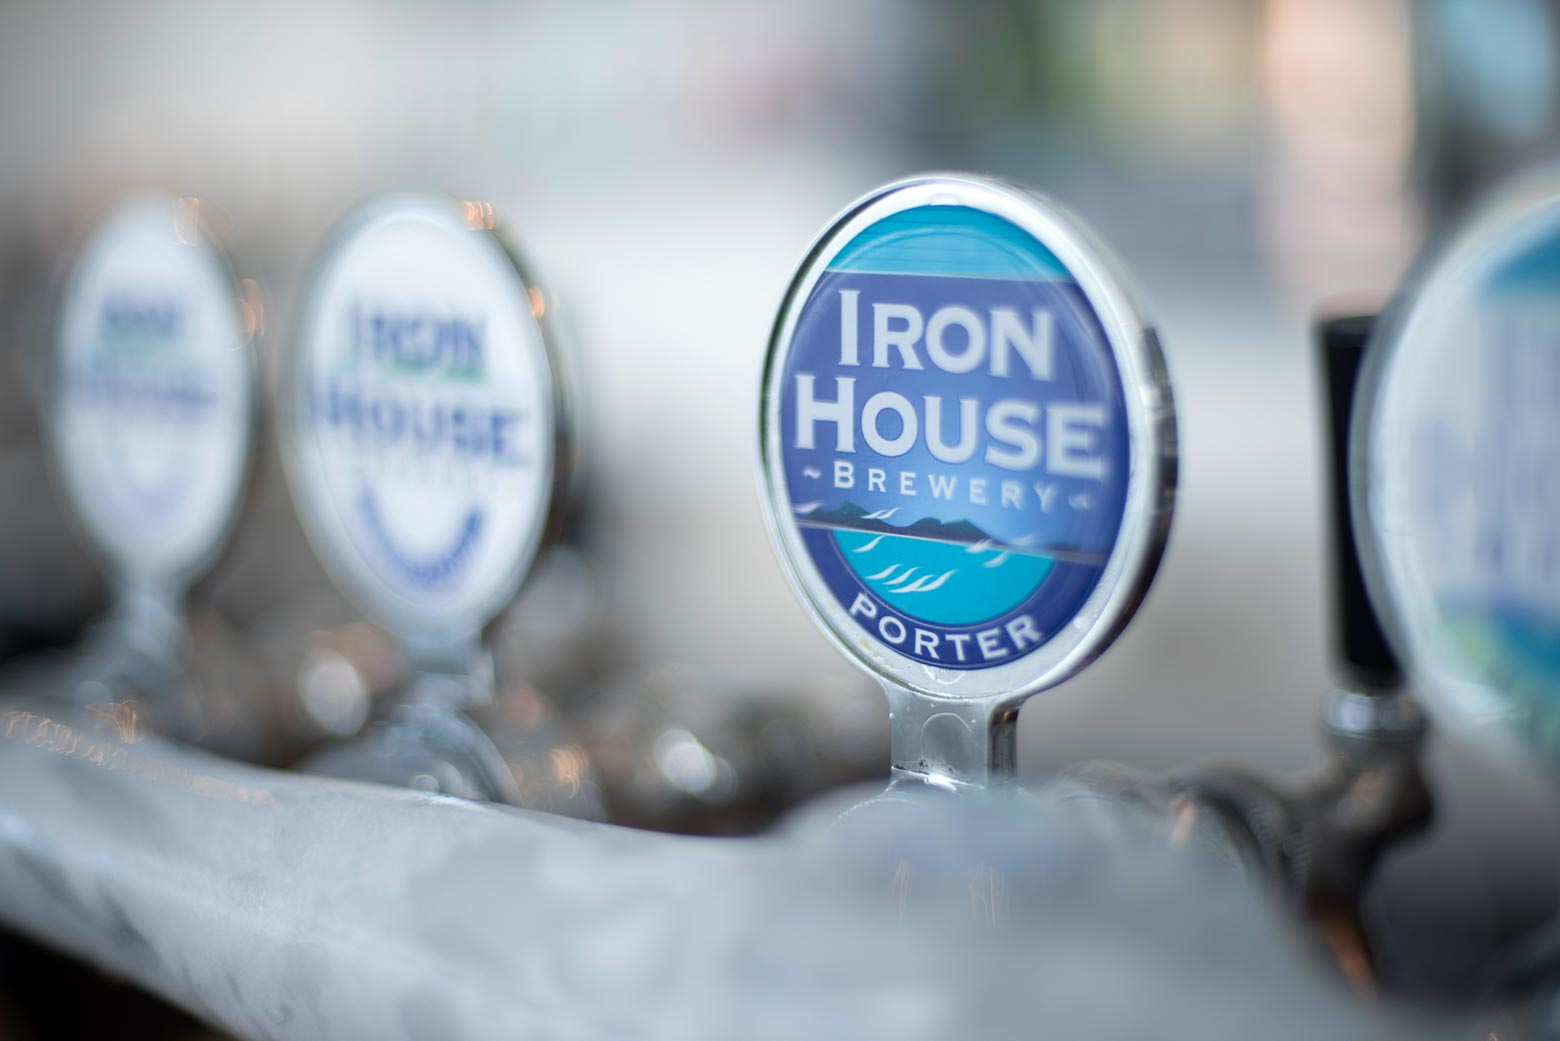 Try the beers at Ironhouse Brewery on your Lap of Tasmania road trip